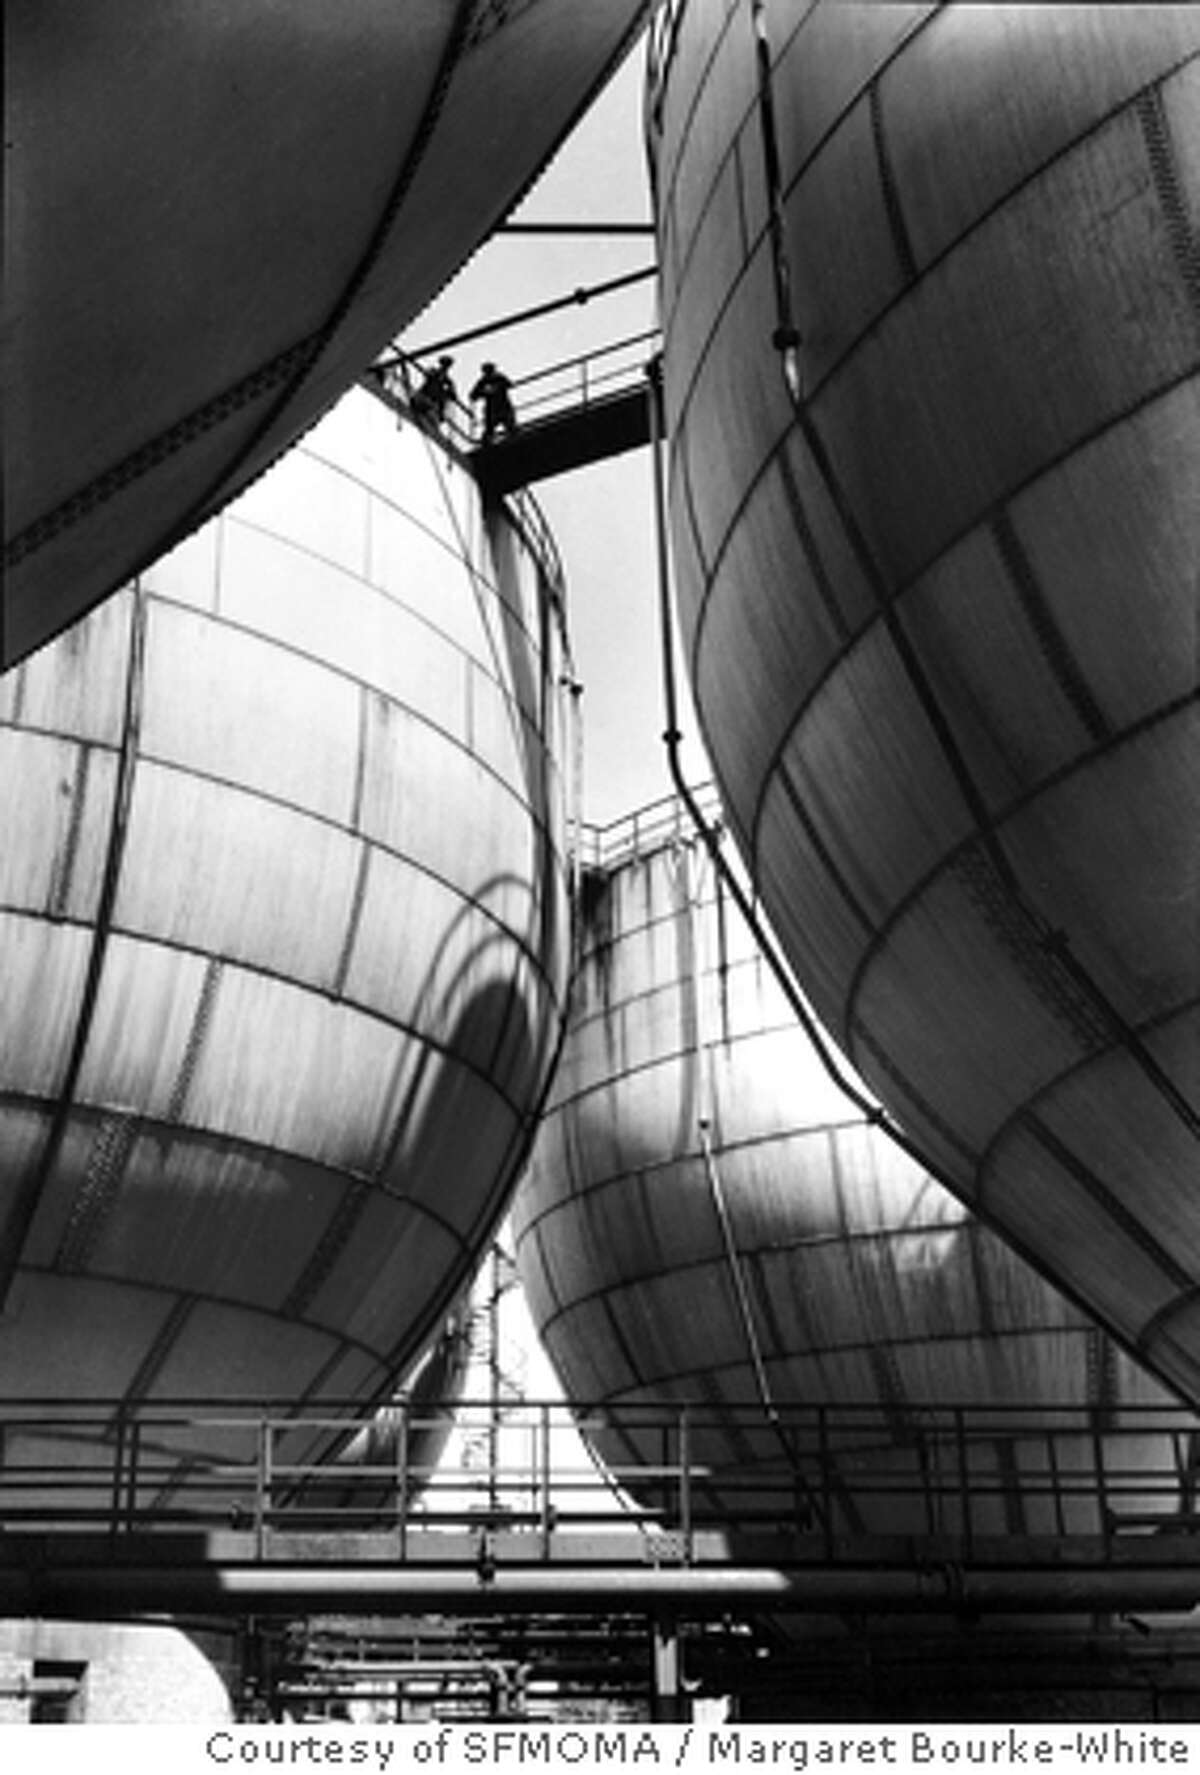 Margaret Bourke-White, Ammonia Storage Tanks, I. G. Farben, 1930; Promised gift of Prentice and Paul Sack to the Prentice and Paul Sack Photographic Trust; � Estate of Margaret Bourke-White. Courtesy of SFMOMA